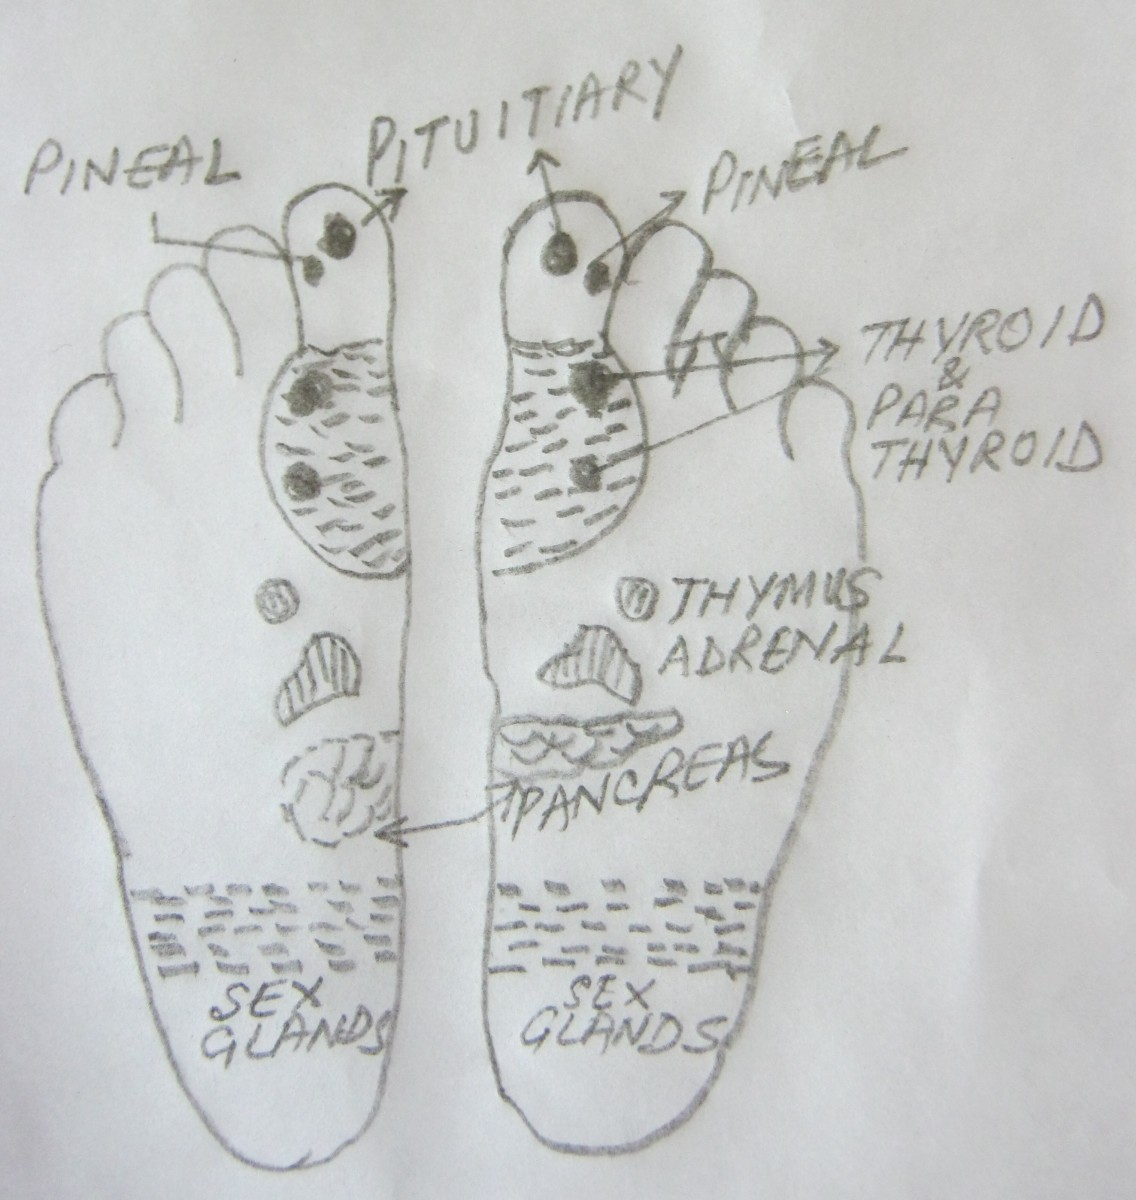 figure 13, points for endocrine glands in both feet